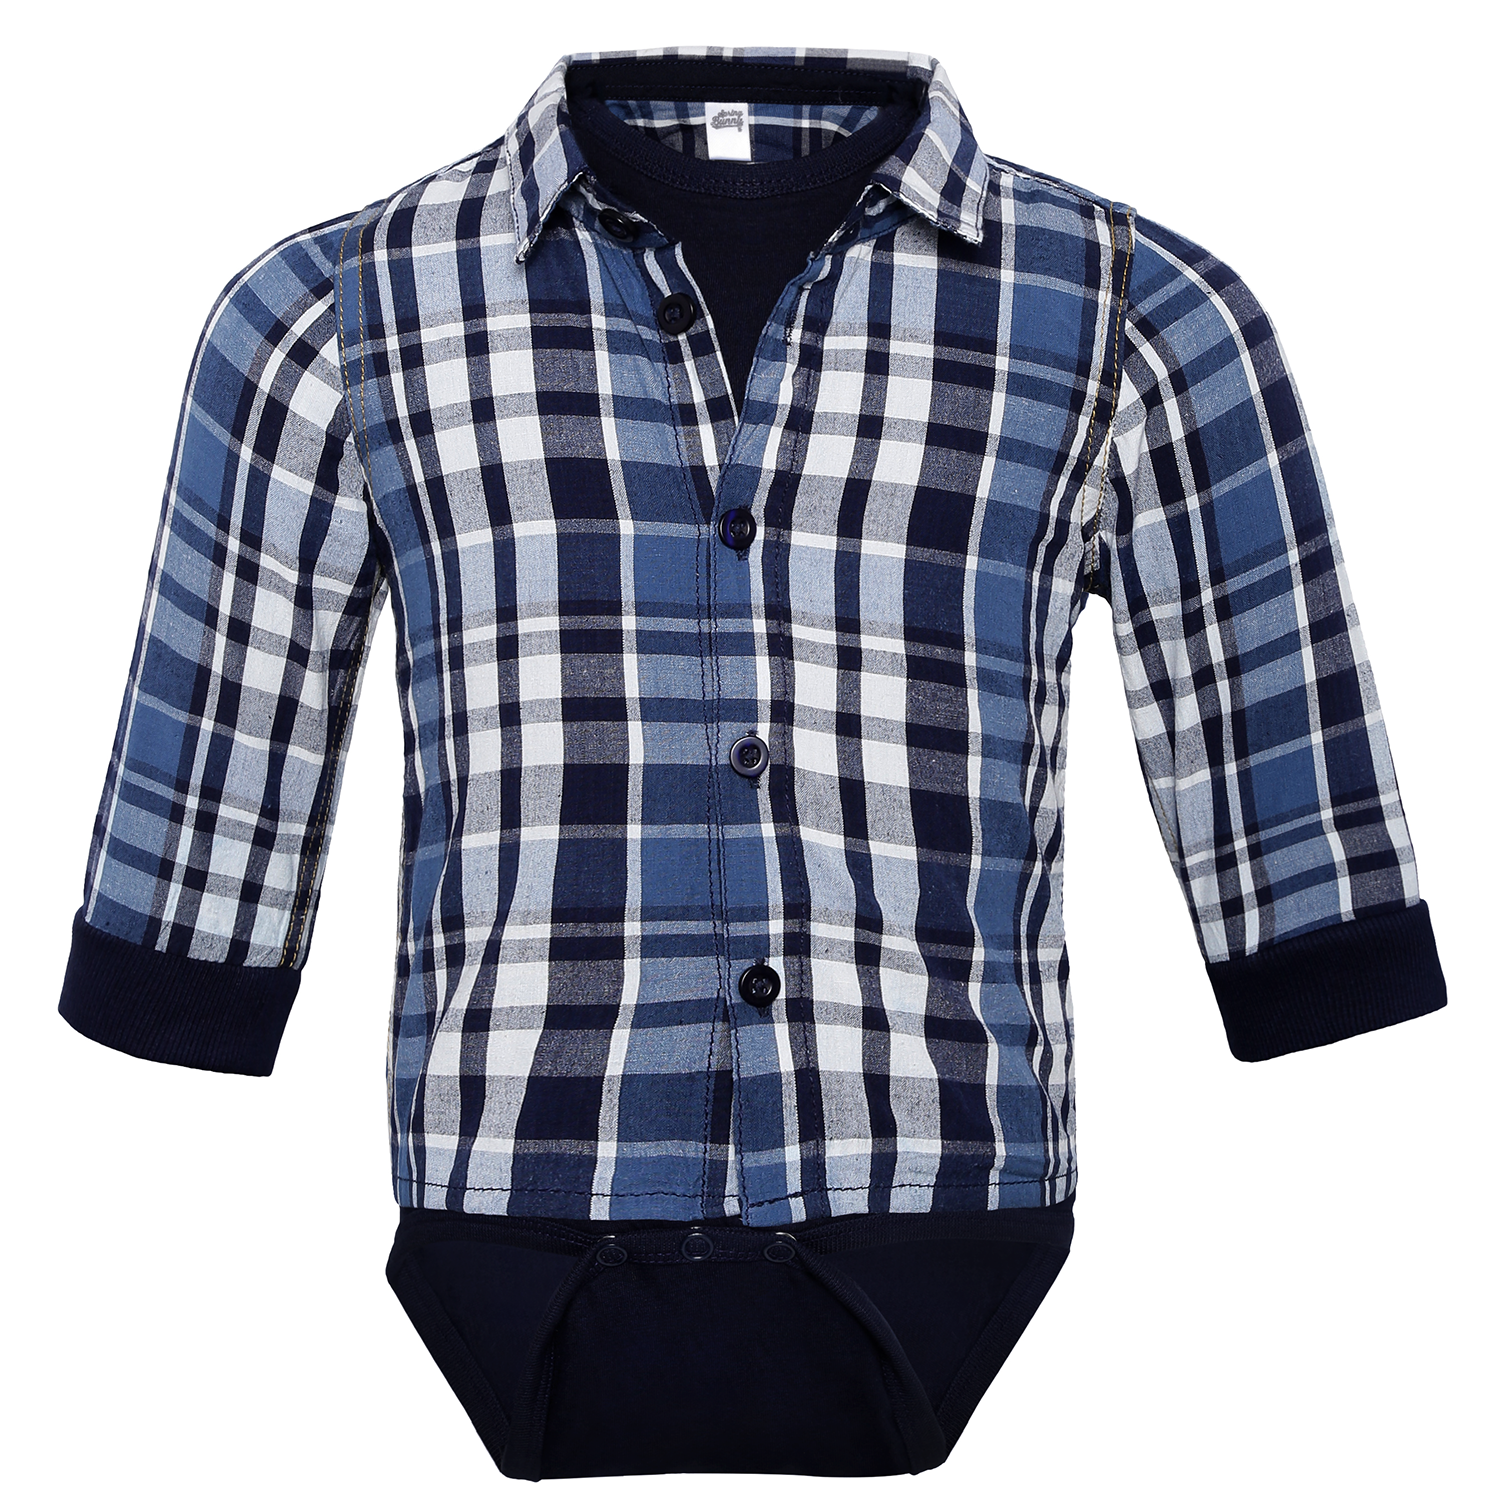 Baby Boy 'Denver' Romper with Shirt